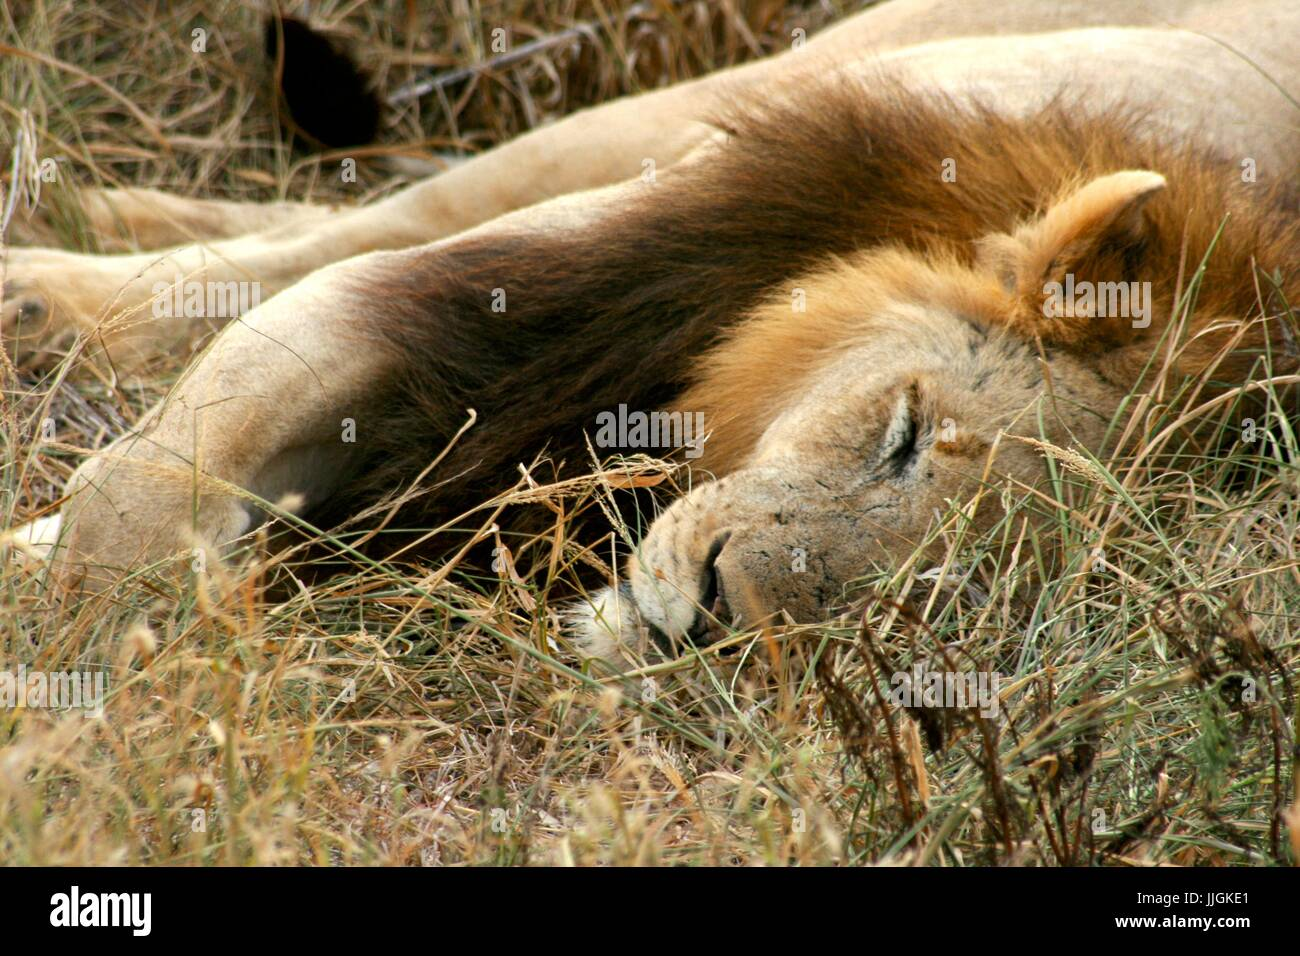 Sleeping lion camouflaged in the grass - Stock Image